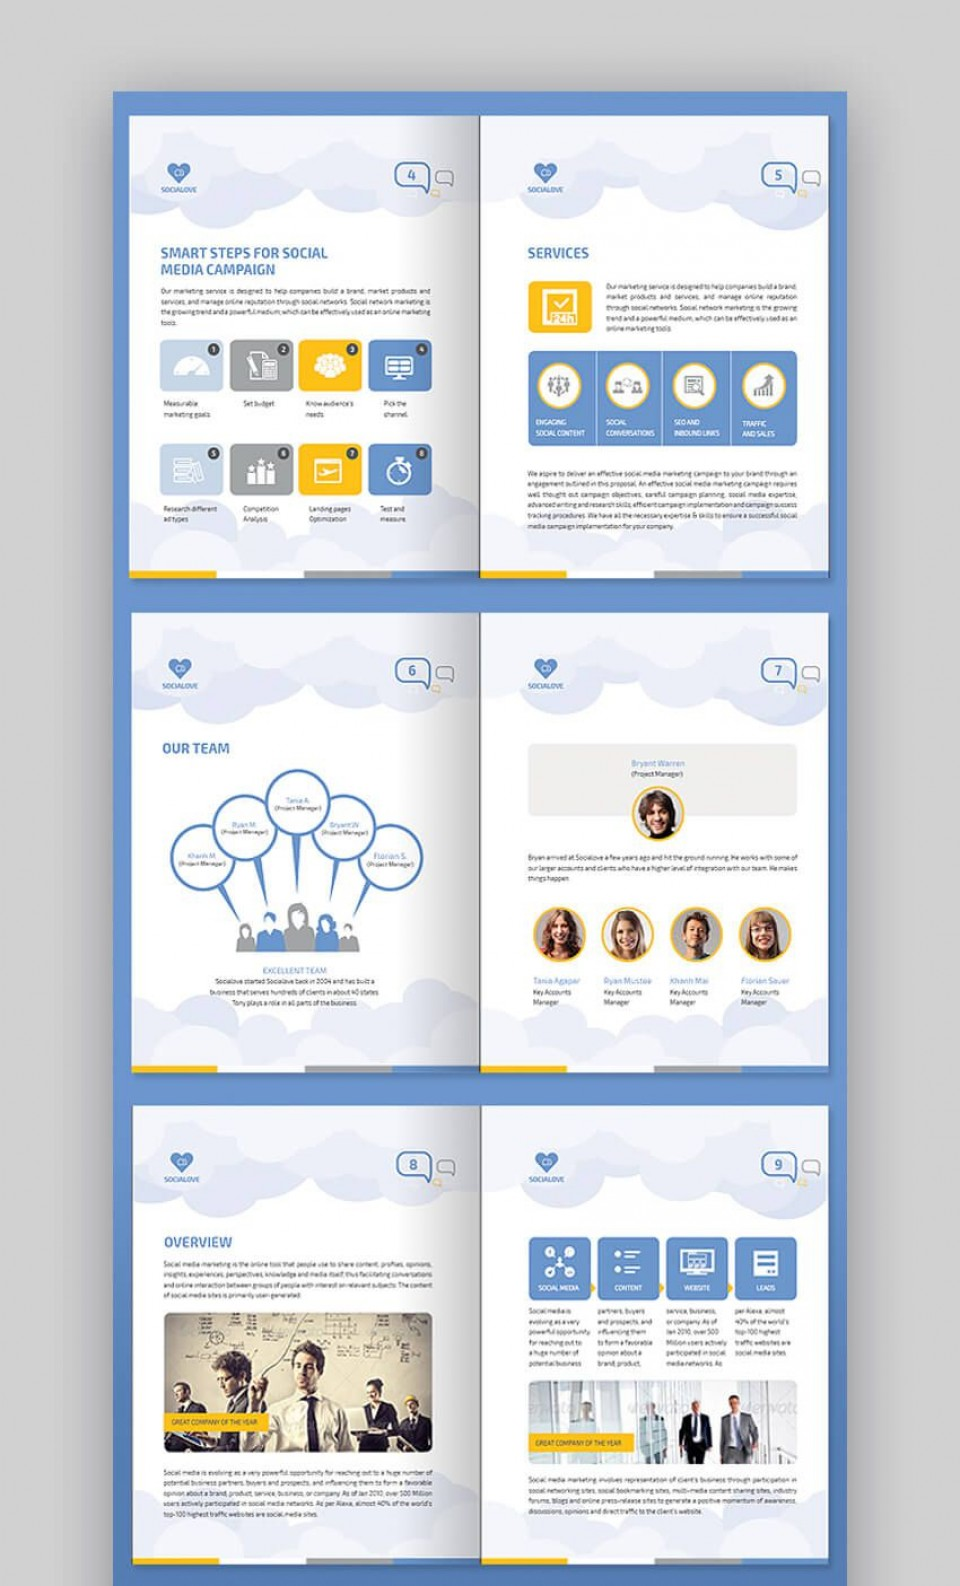 009 Imposing Social Media Proposal Template Image  Plan Sample Pdf 2018960